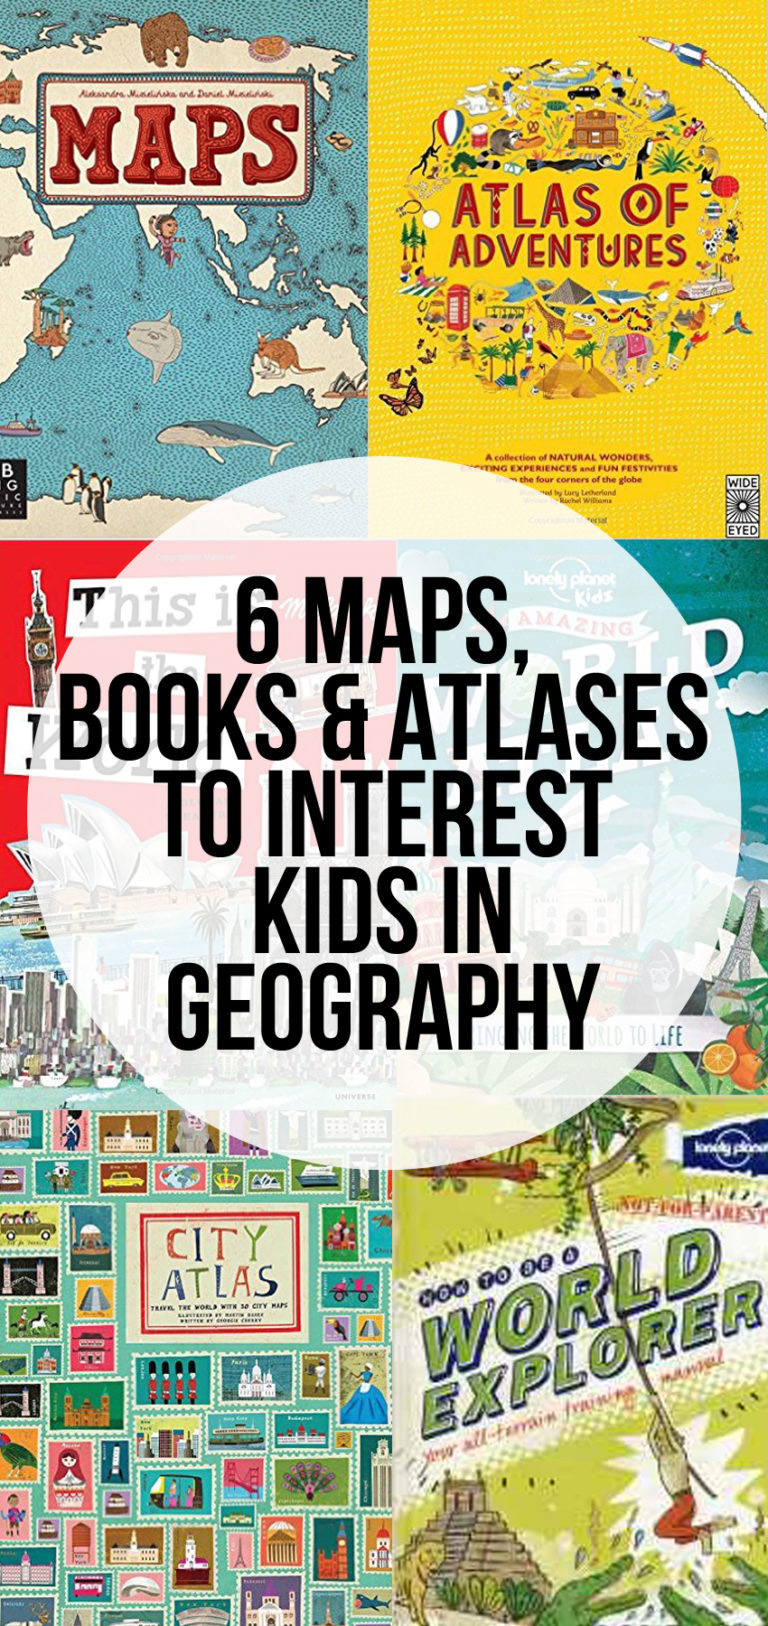 The Best Maps, Books and Atlases to Interest Kids in Geography